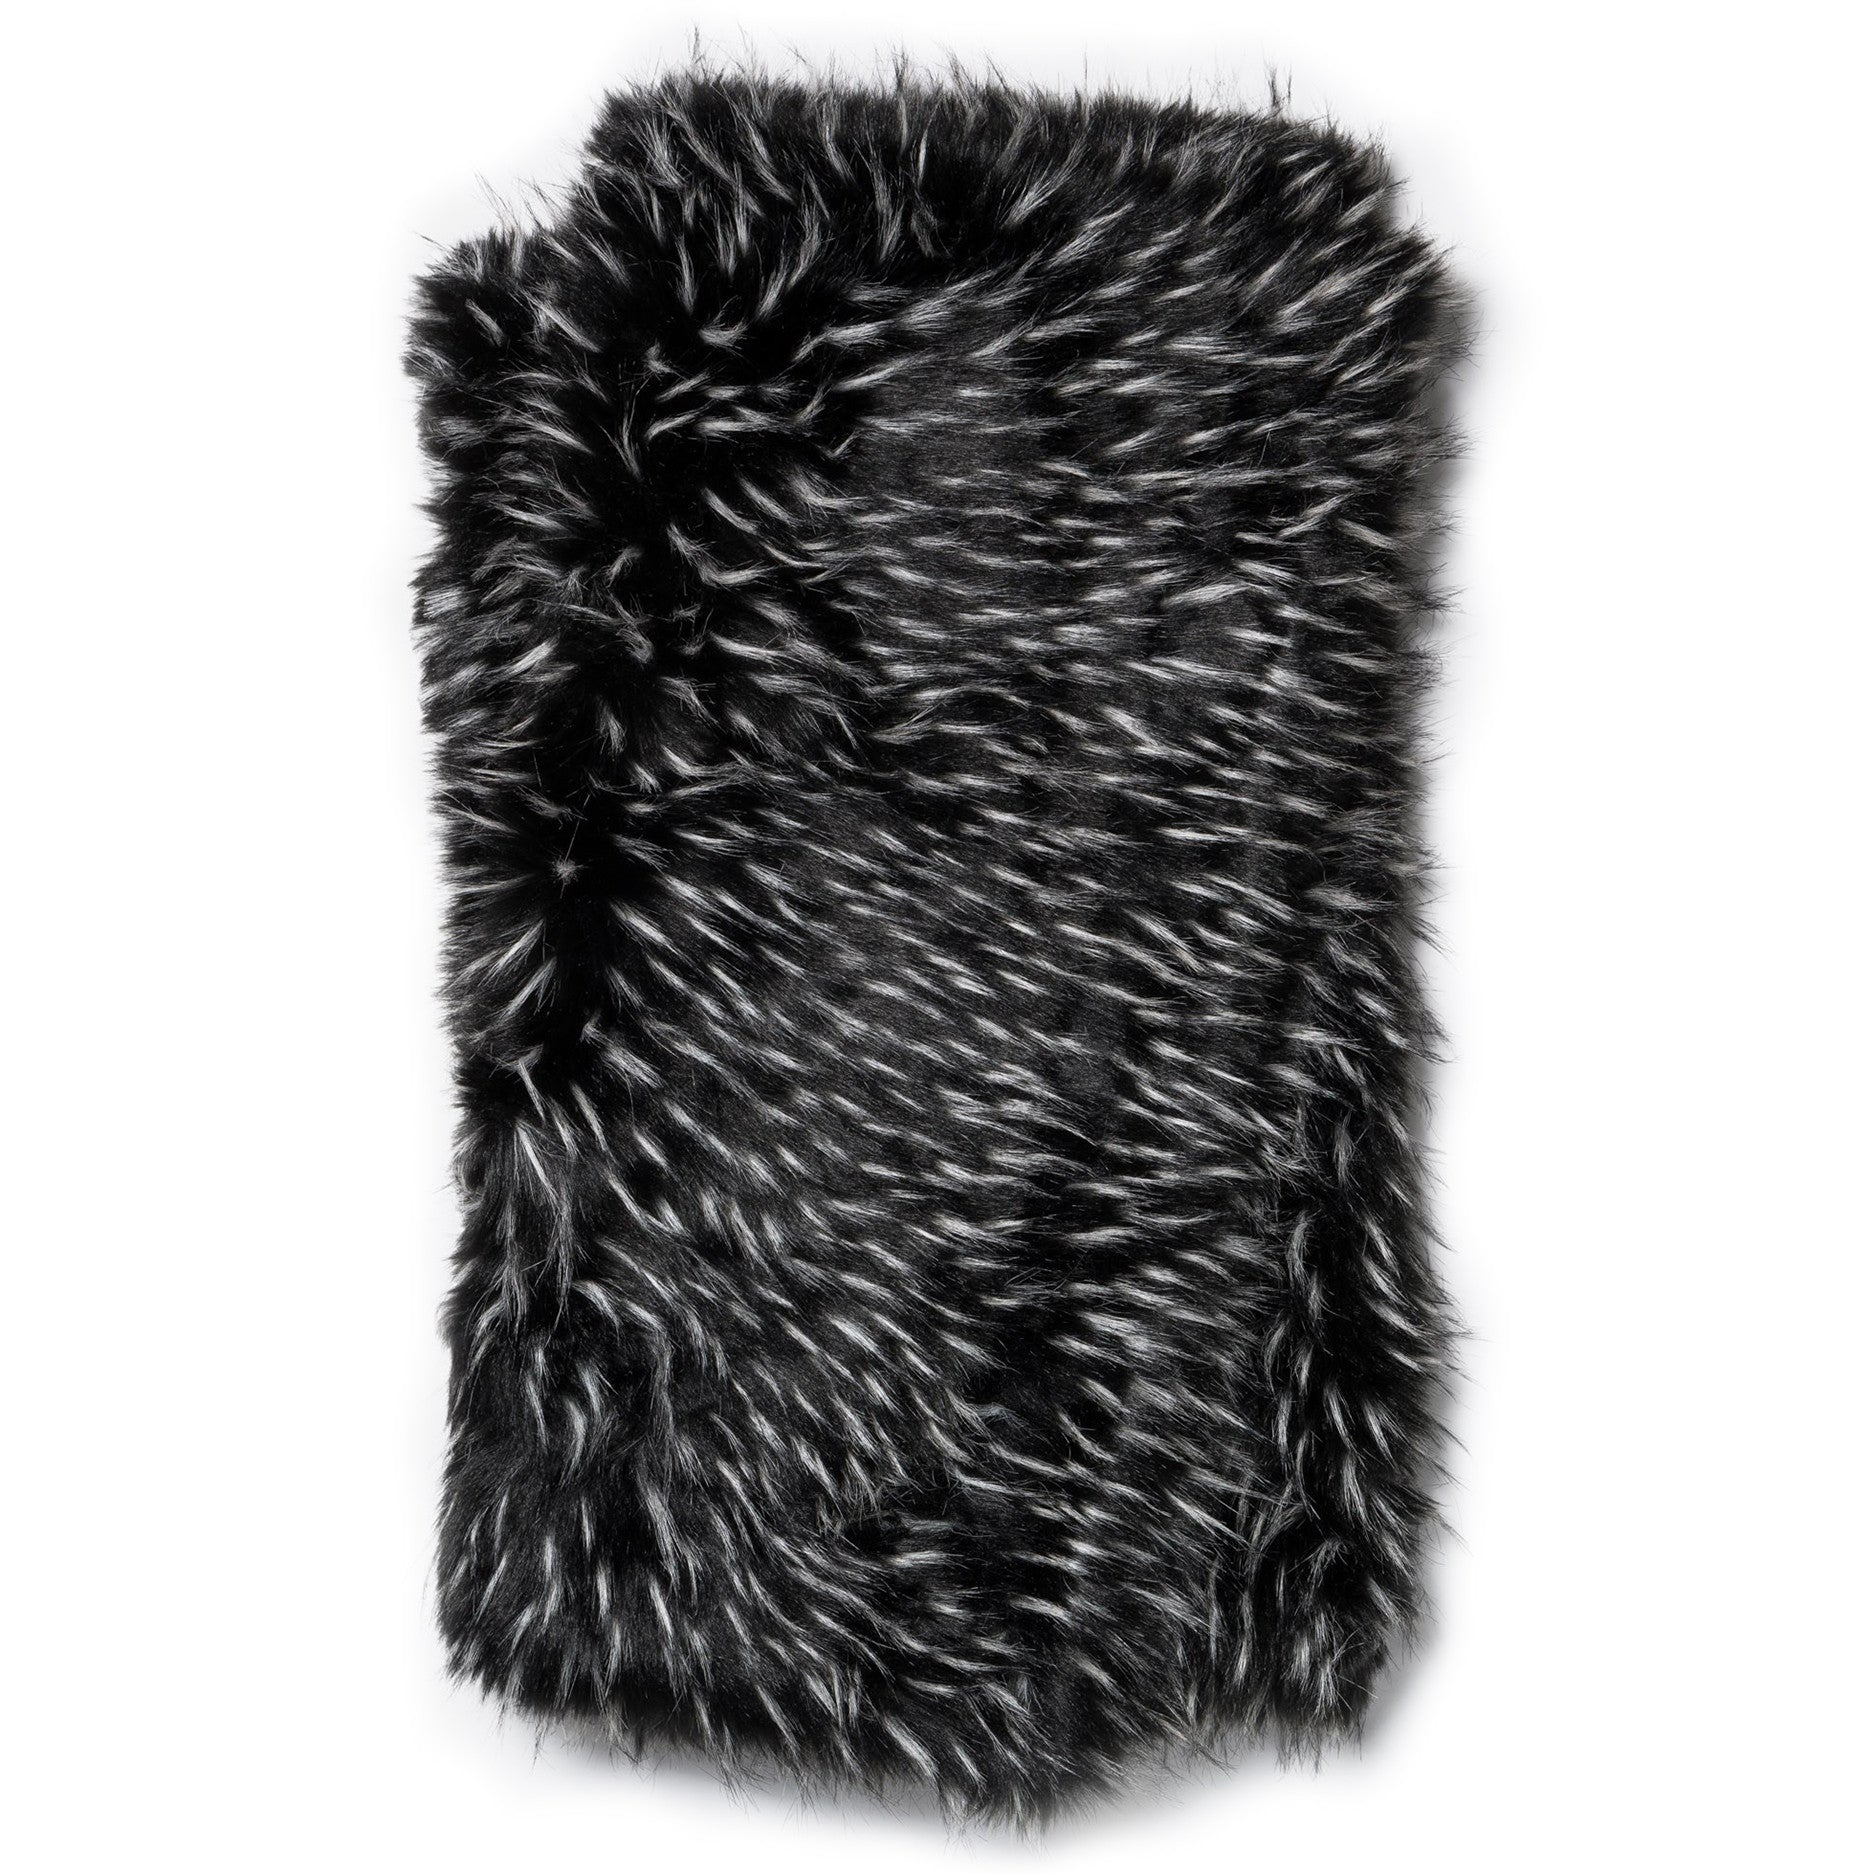 Black and White Faux Fur Throw Blanket